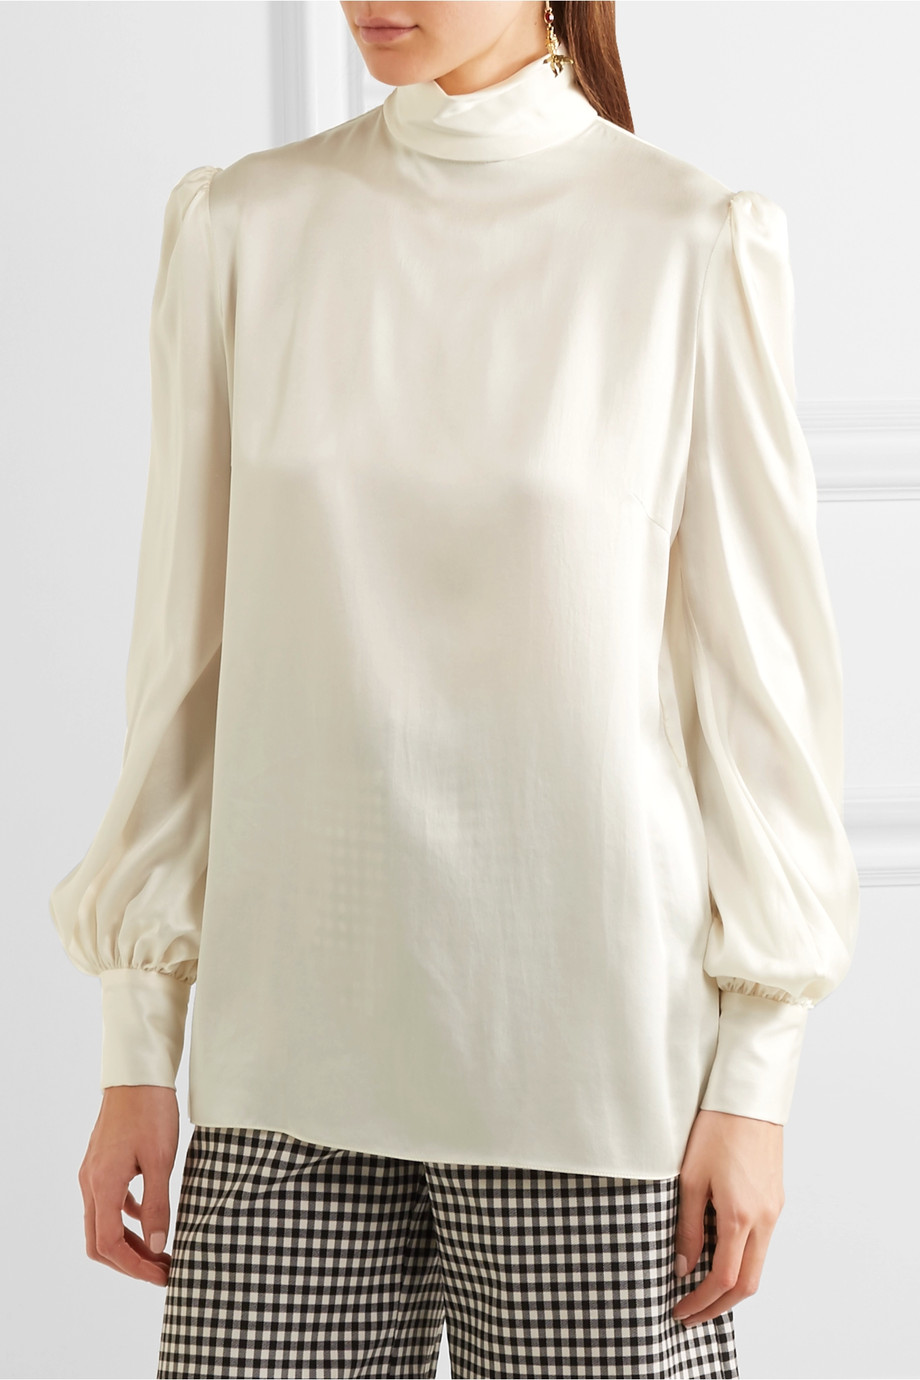 Satin blouse Hillier Bartley buy Satin blouse Hillier Bartley internet shop